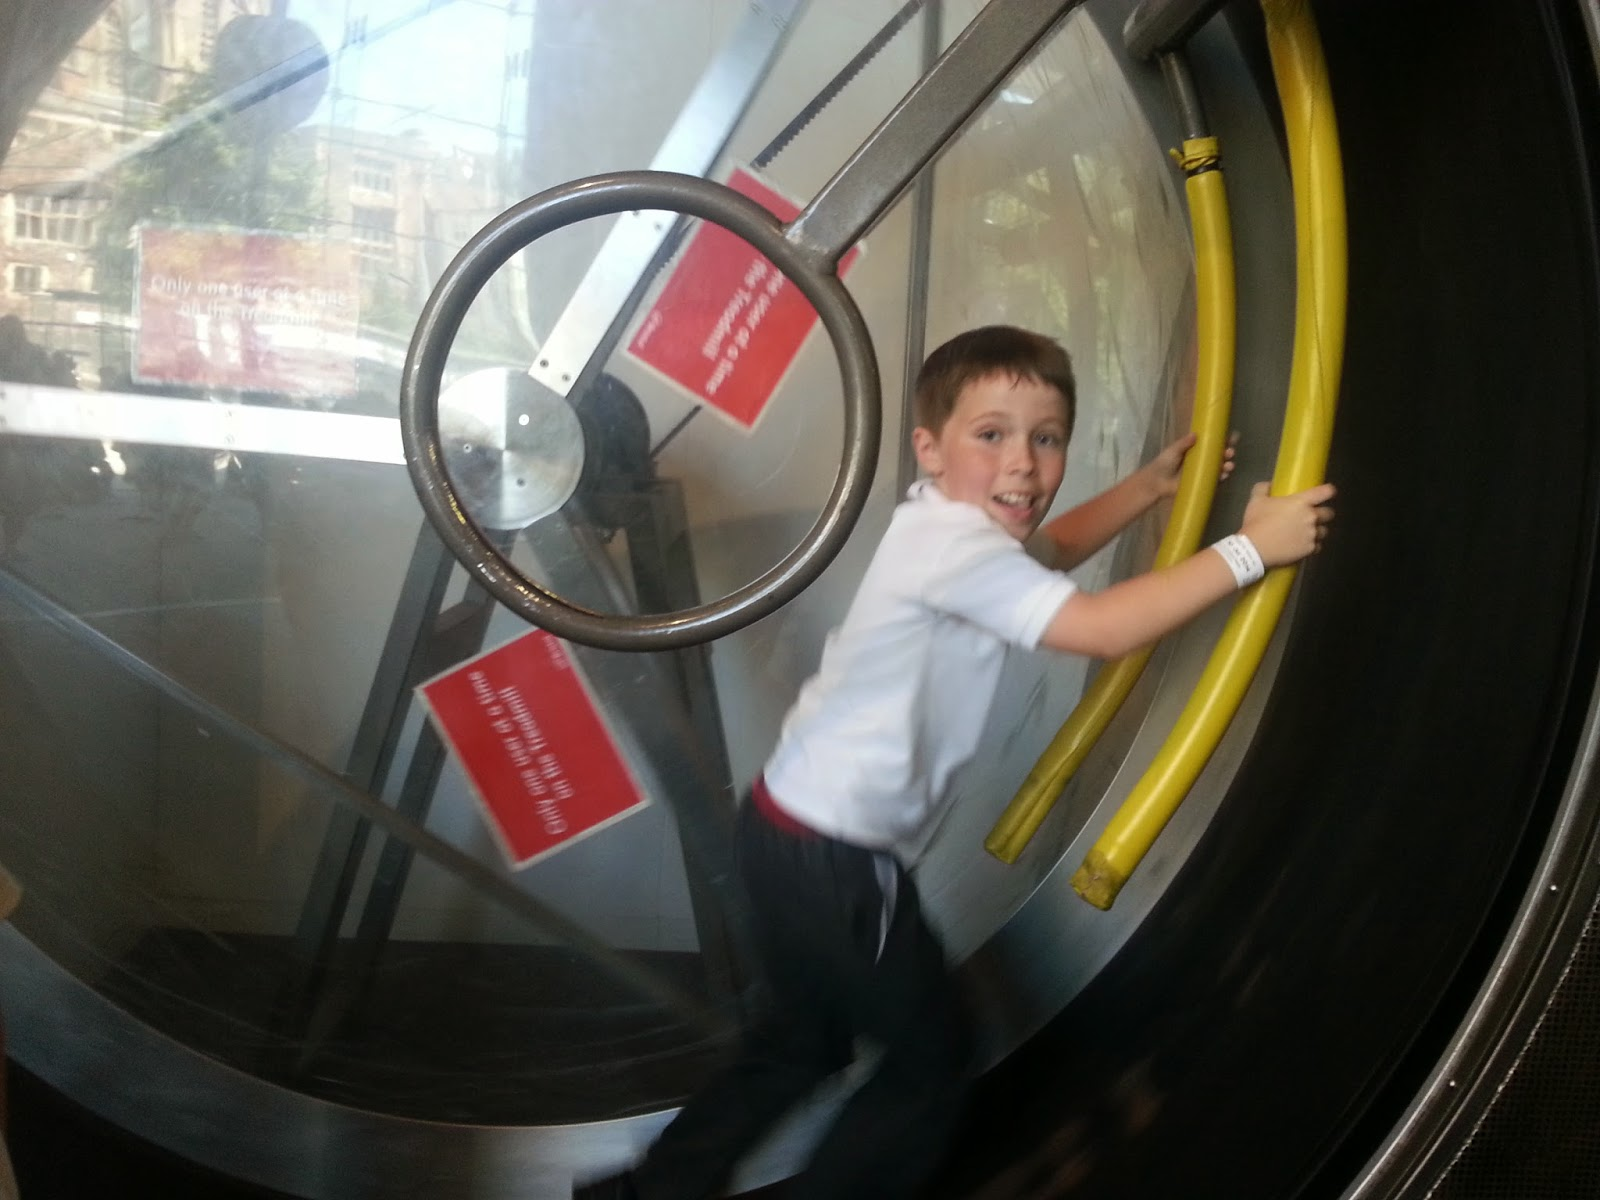 The Human Hamster Wheel at At-Bristol